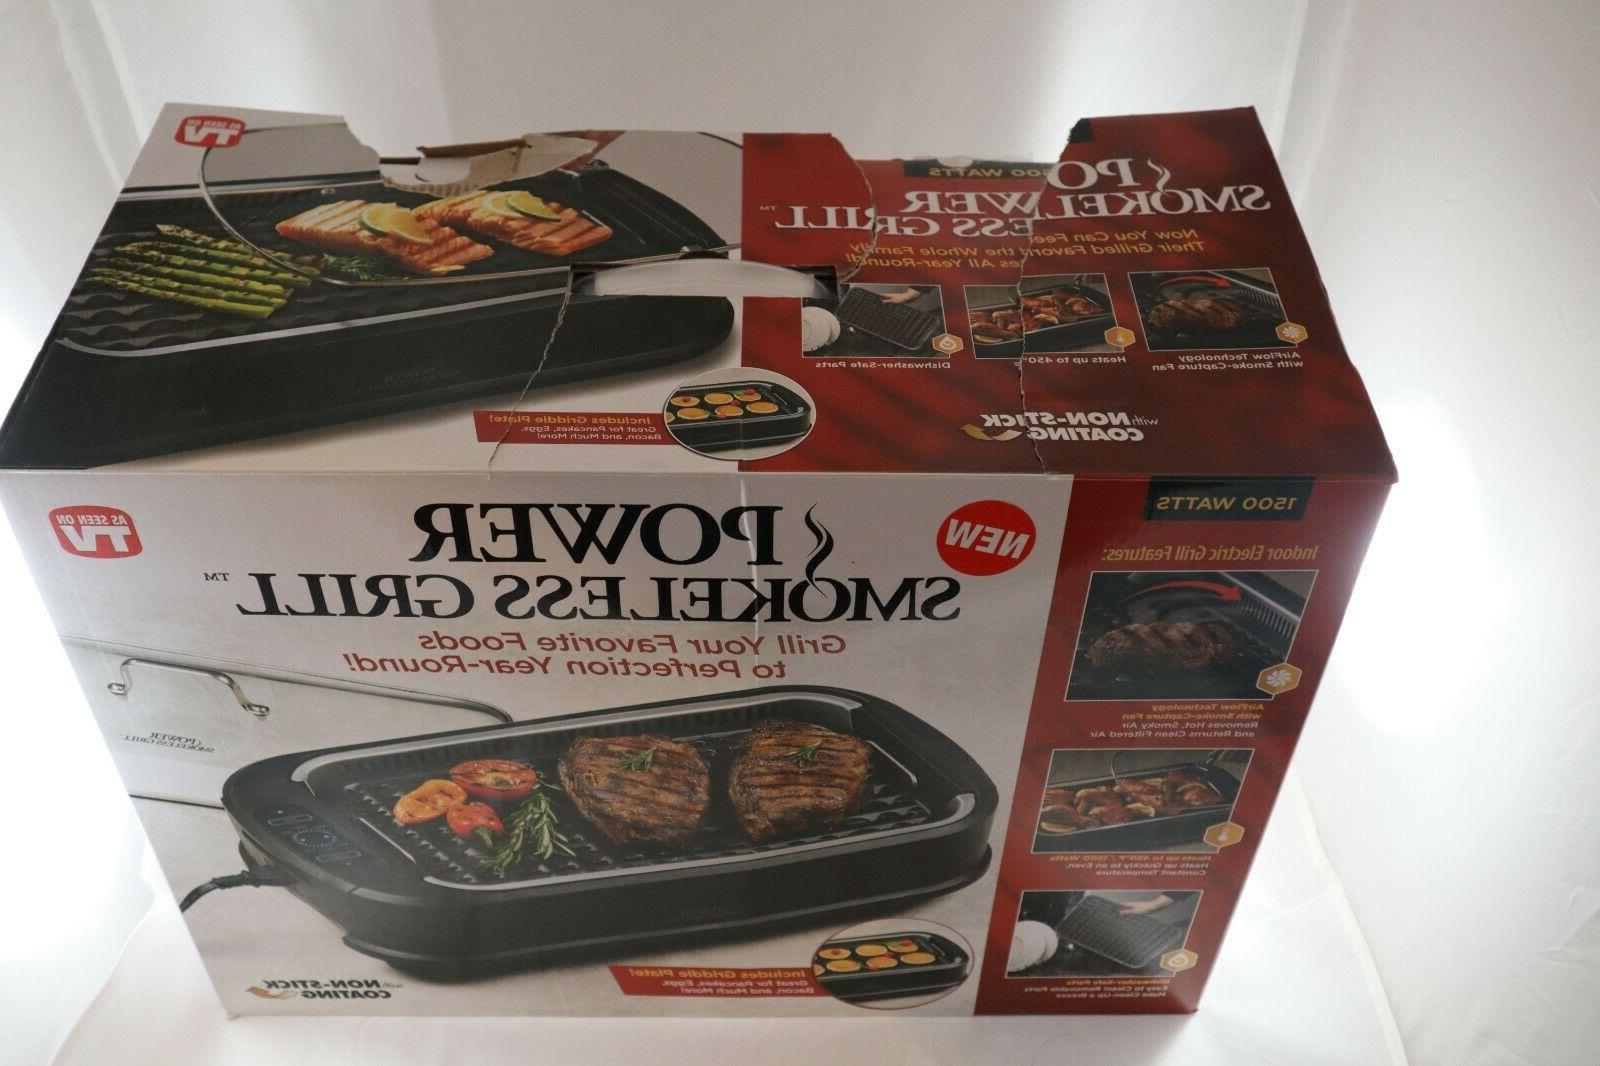 As on by Tristar Power Indoor Grill 1500 - FREE